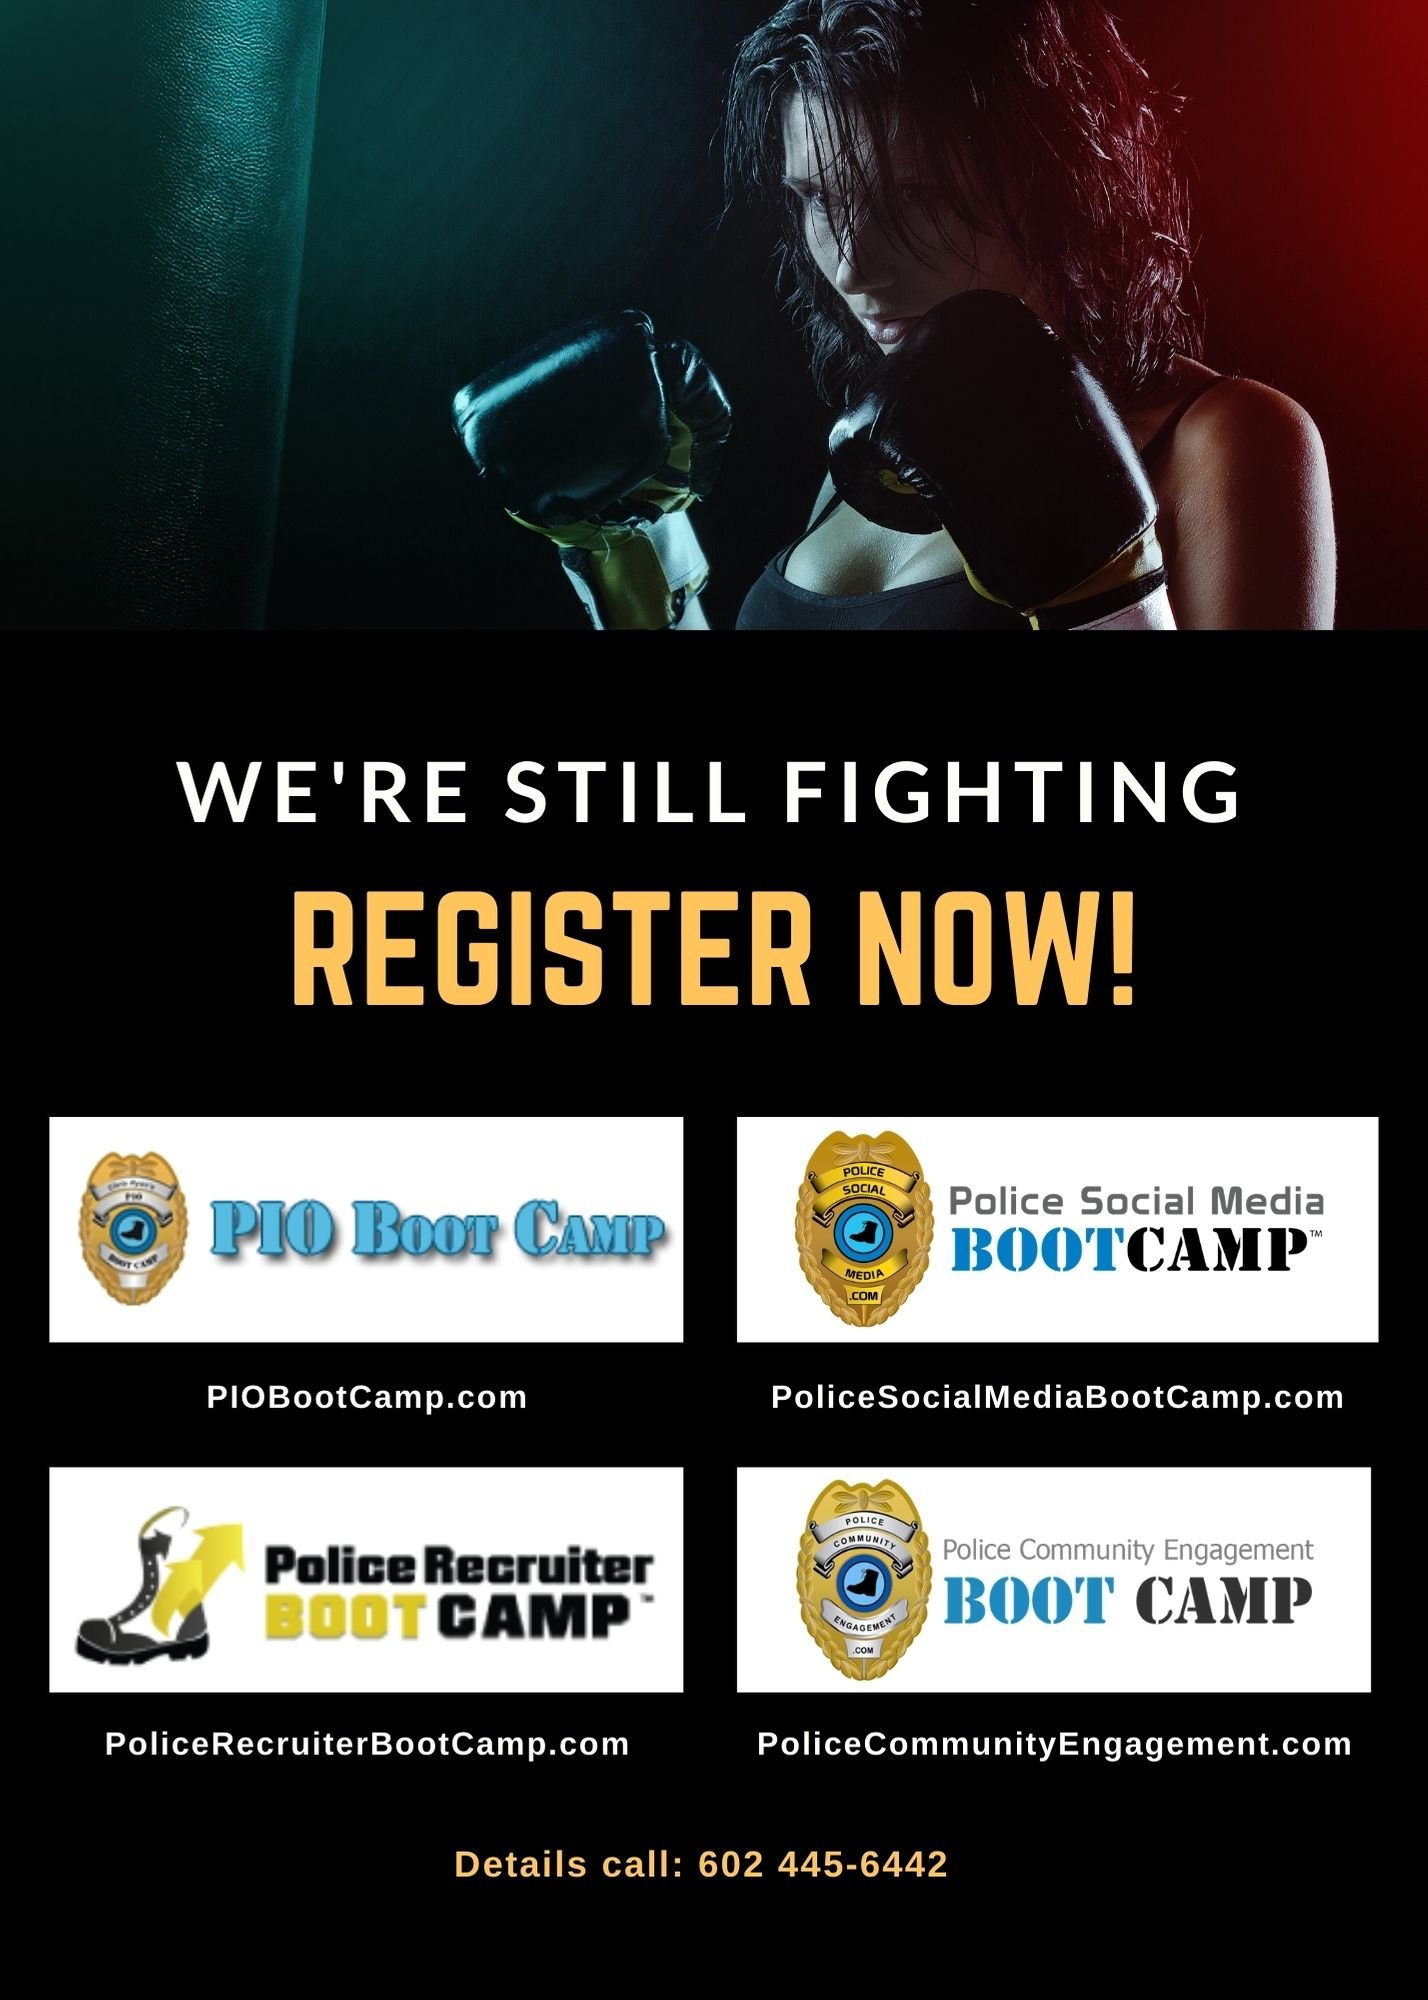 We're Still Fighting - PIO Boot Camp